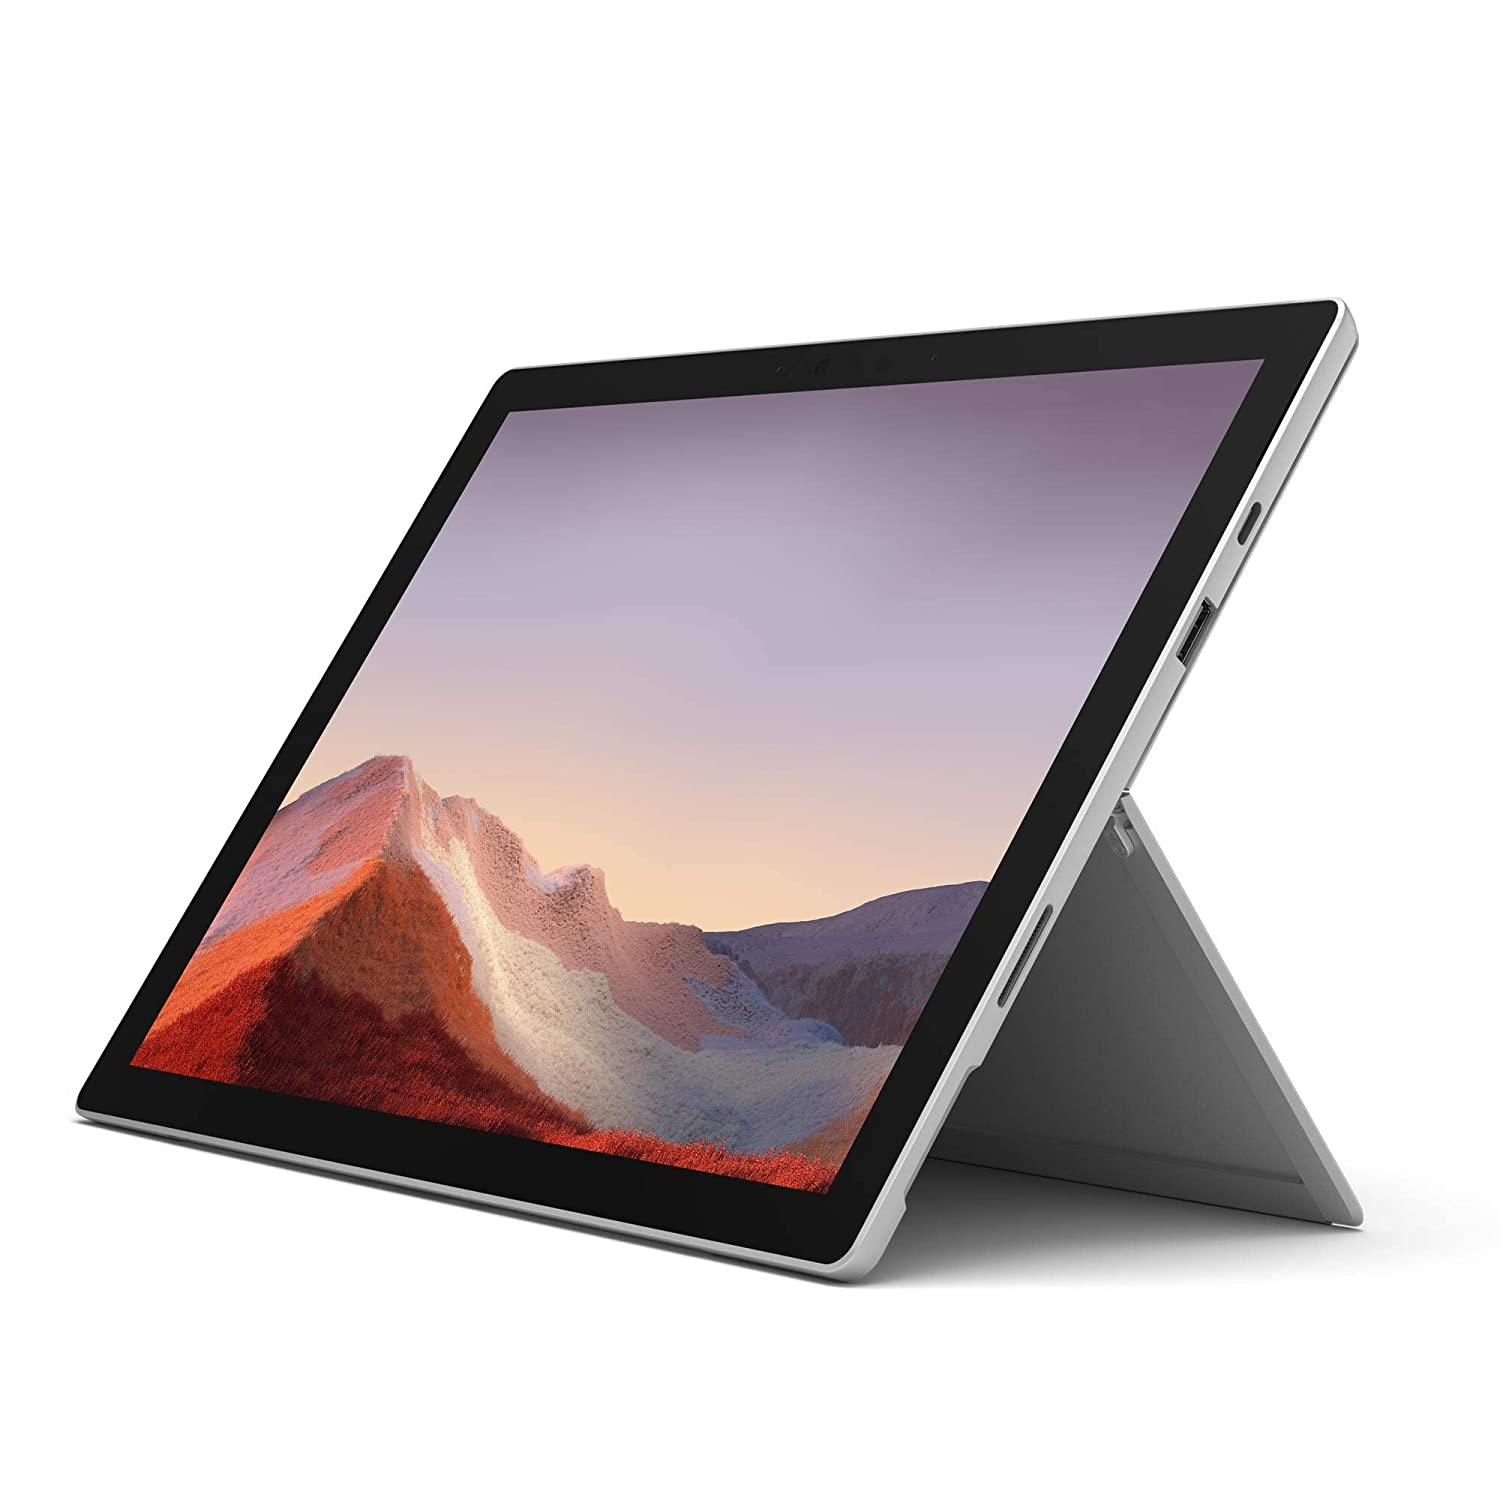 [amazon.de] Microsoft Surface Pro 7 (Intel Core i5, 8GB RAM, 128GB SSD) Platin Grau um 805€ anstatt 1.043€